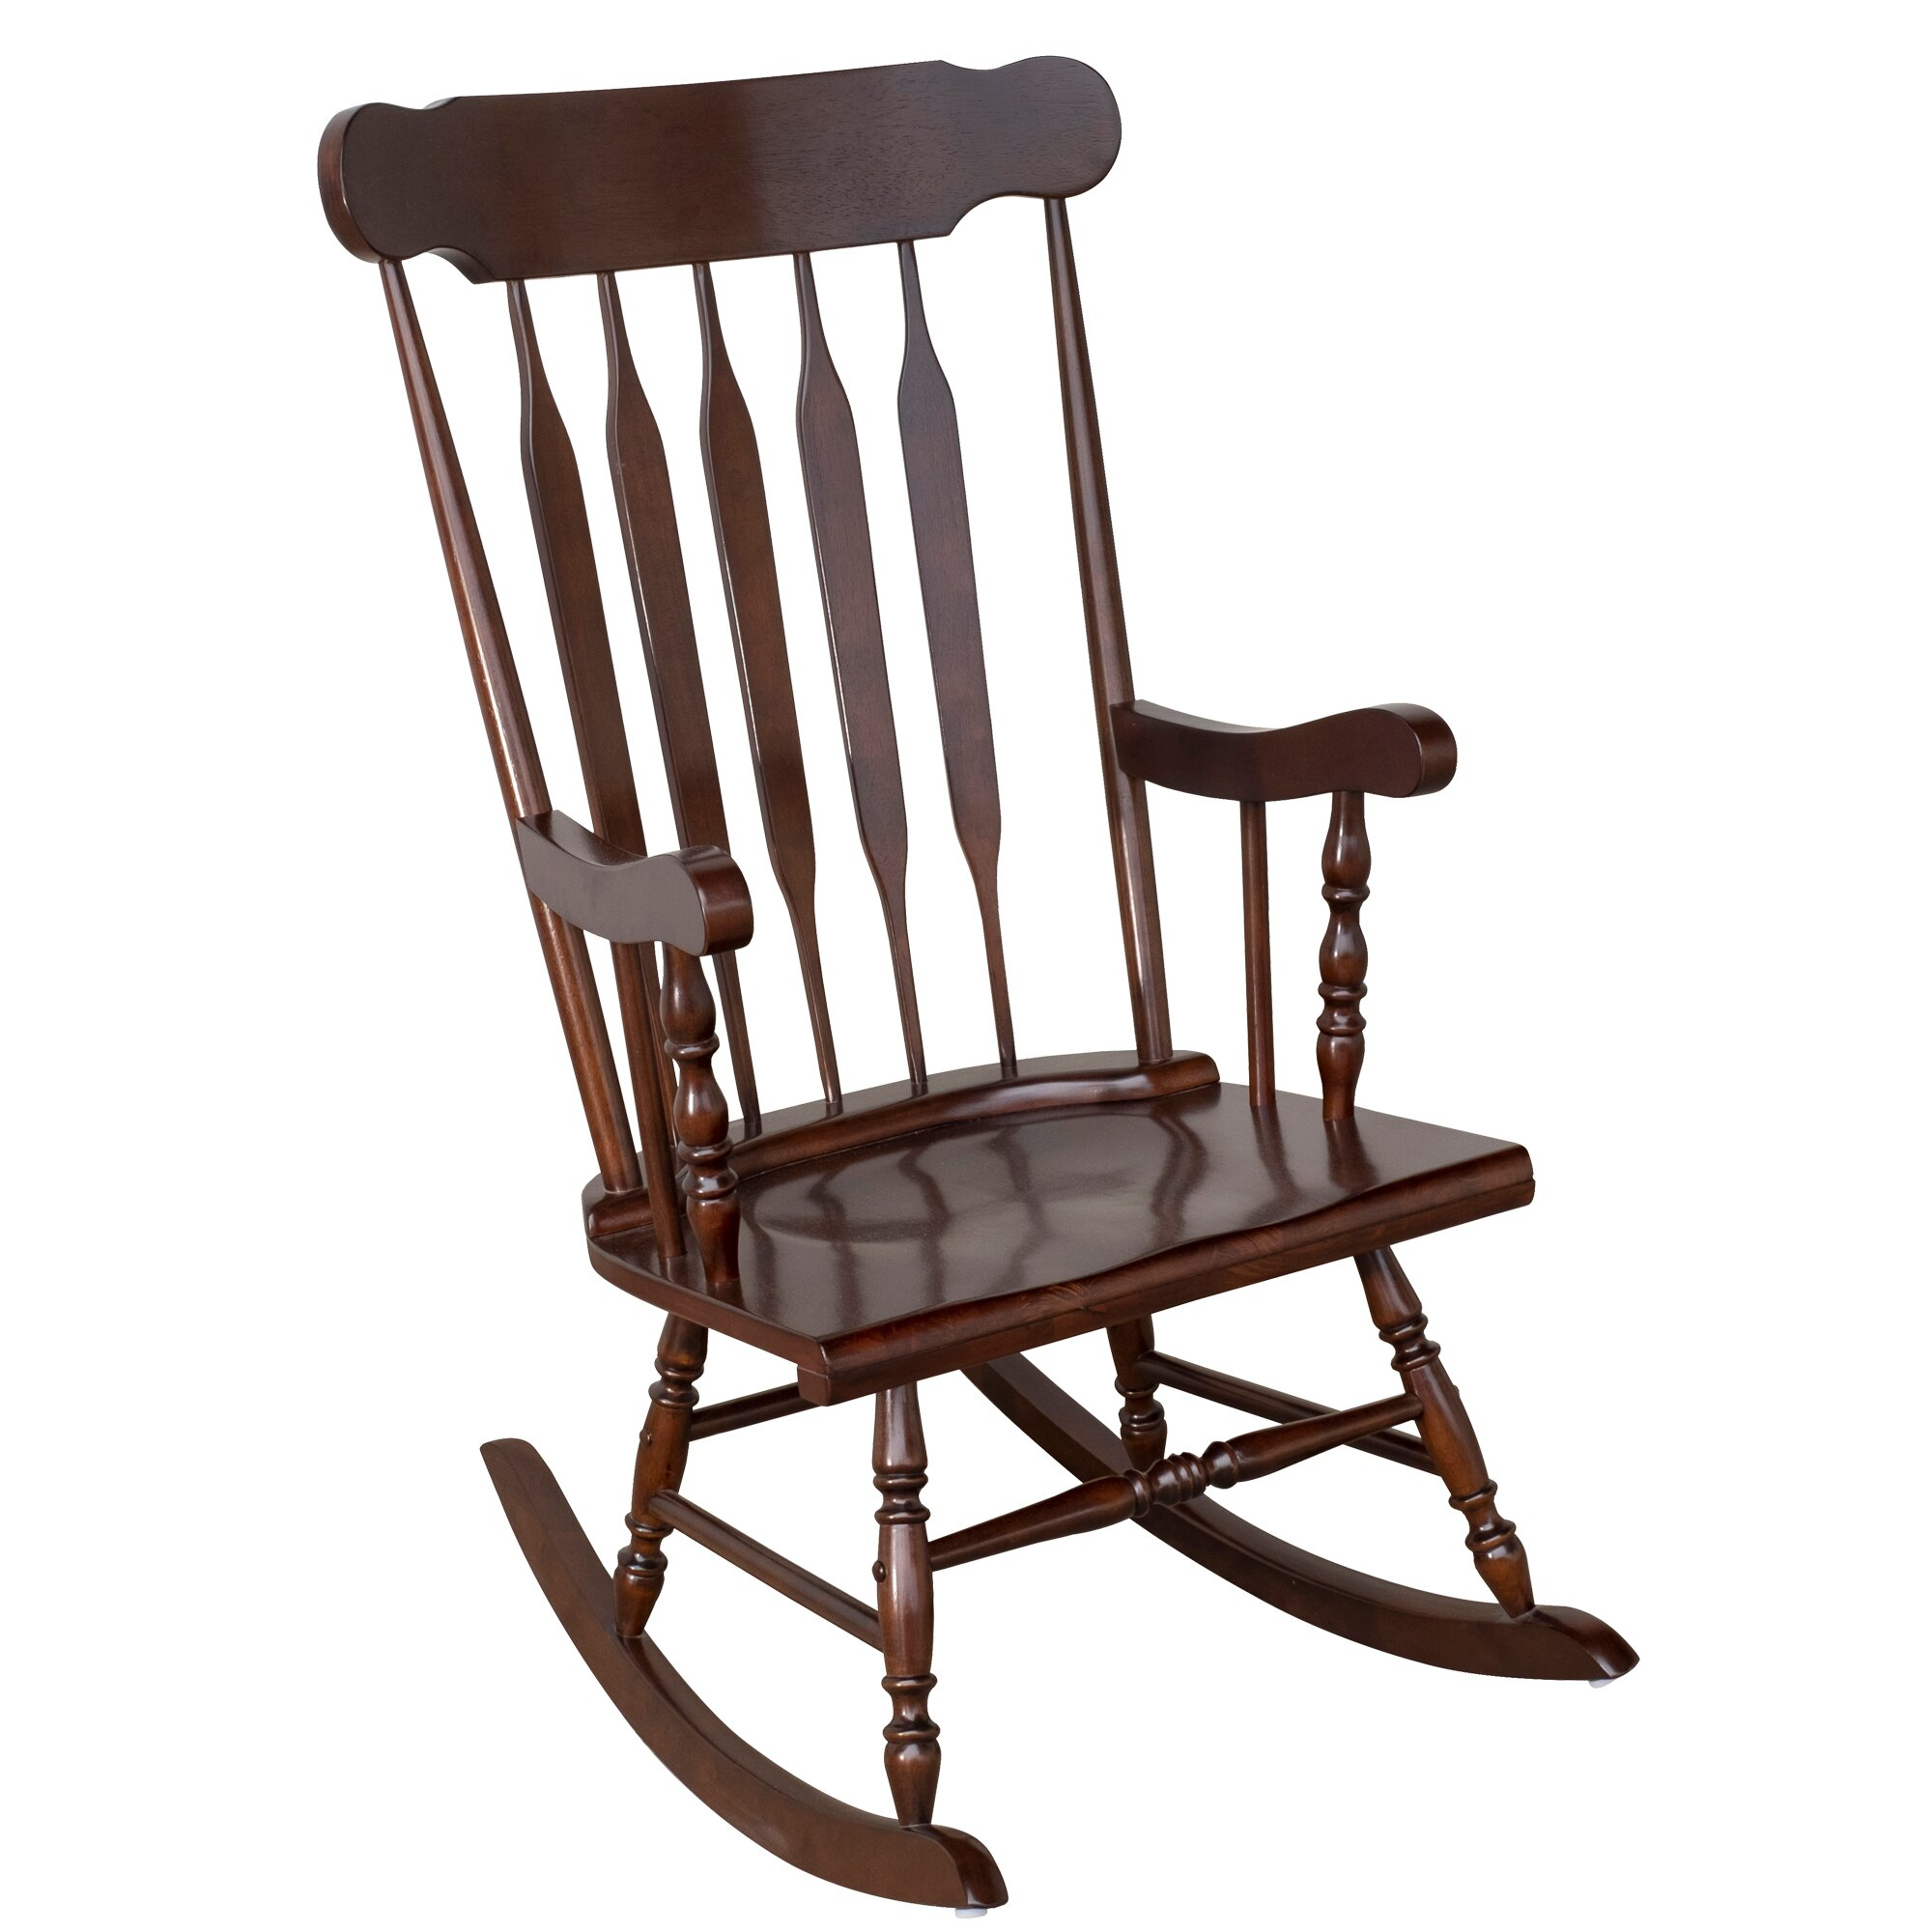 Aosom: Homcom Traditional Slat Wood Rocking Chair Indoor Porch Furniture  For Patio Living Room – Dark Brown   Rakuten Throughout Traditional Indoor Acacia Wood Rocking Chairs With Cushions (#2 of 20)